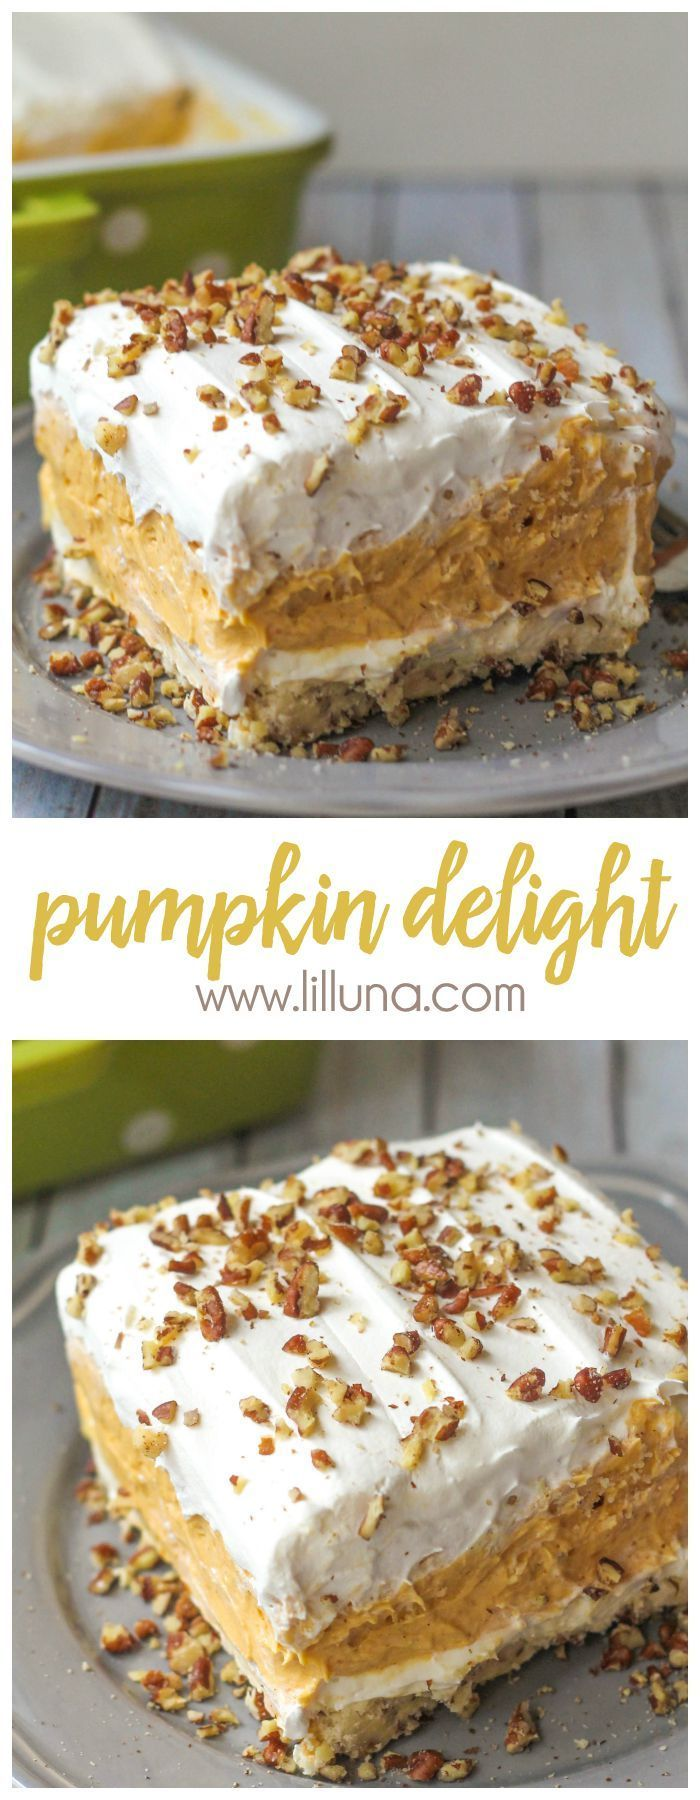 stylish coats Creamy and Cool Pumpkin Delight recipe   this layered dessert is SO good and perfect for fall    lilluna com